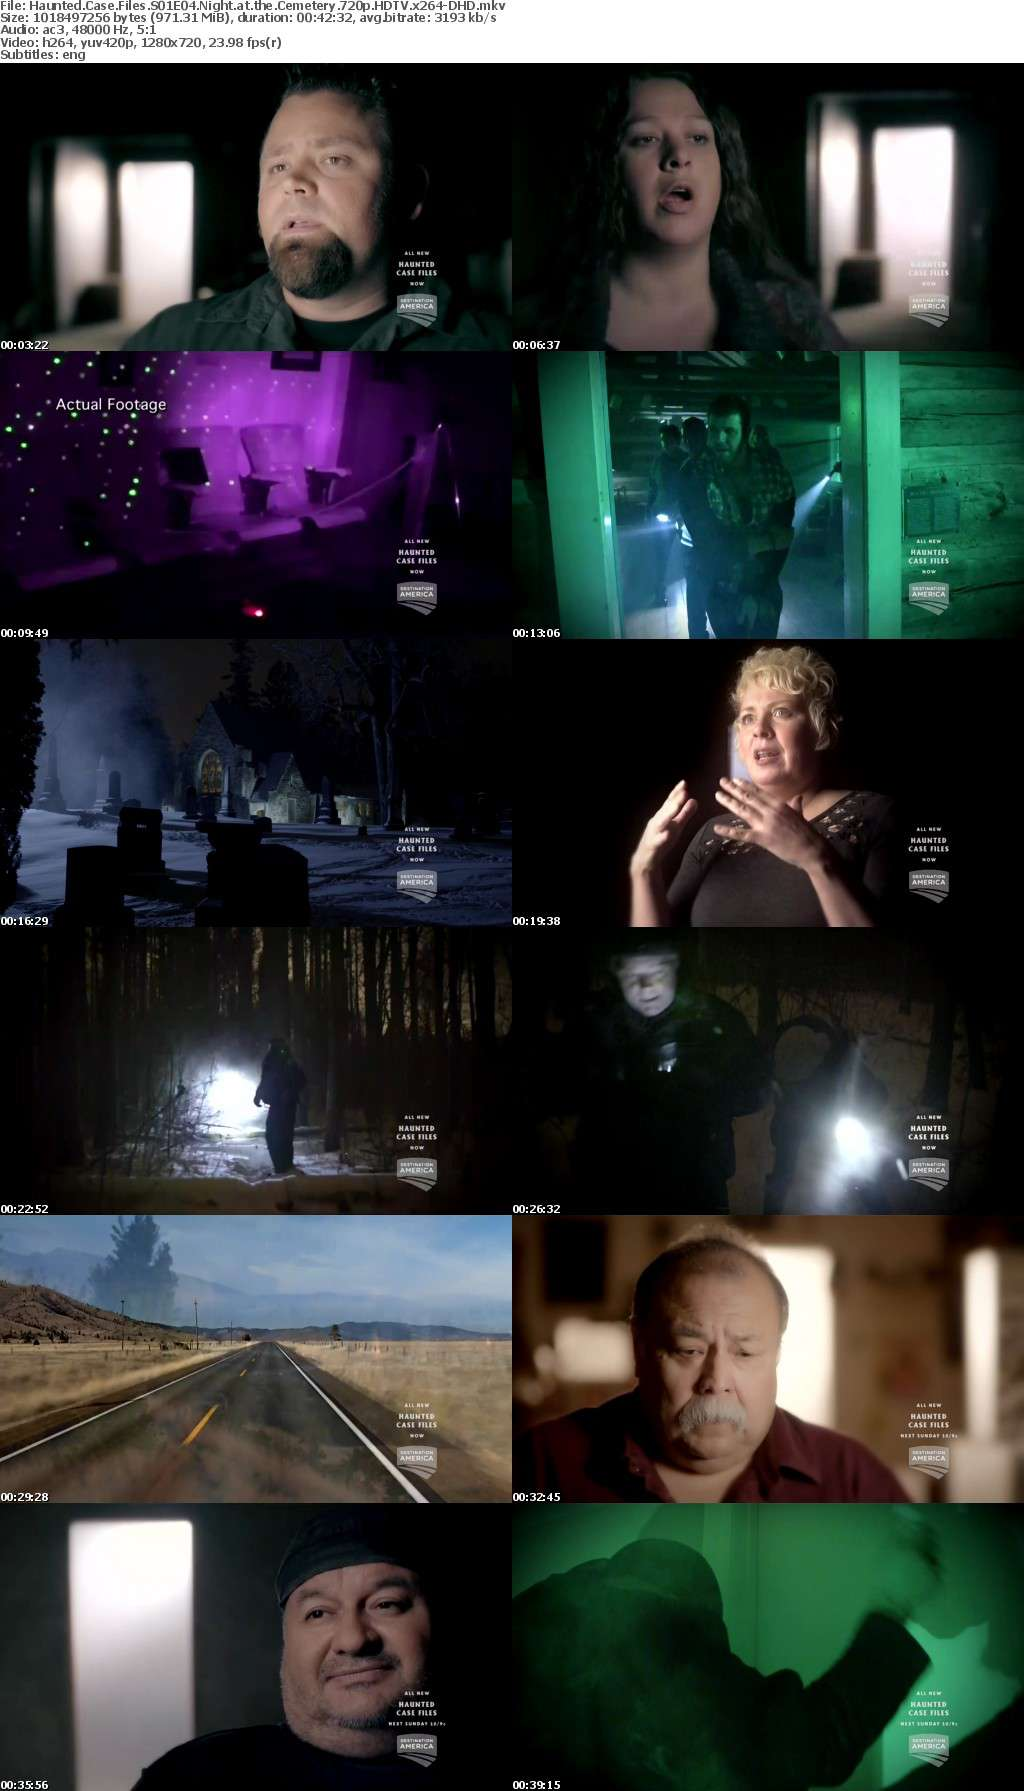 Haunted Case Files S01E04 Night at the Cemetery 720p HDTV x264-DHD